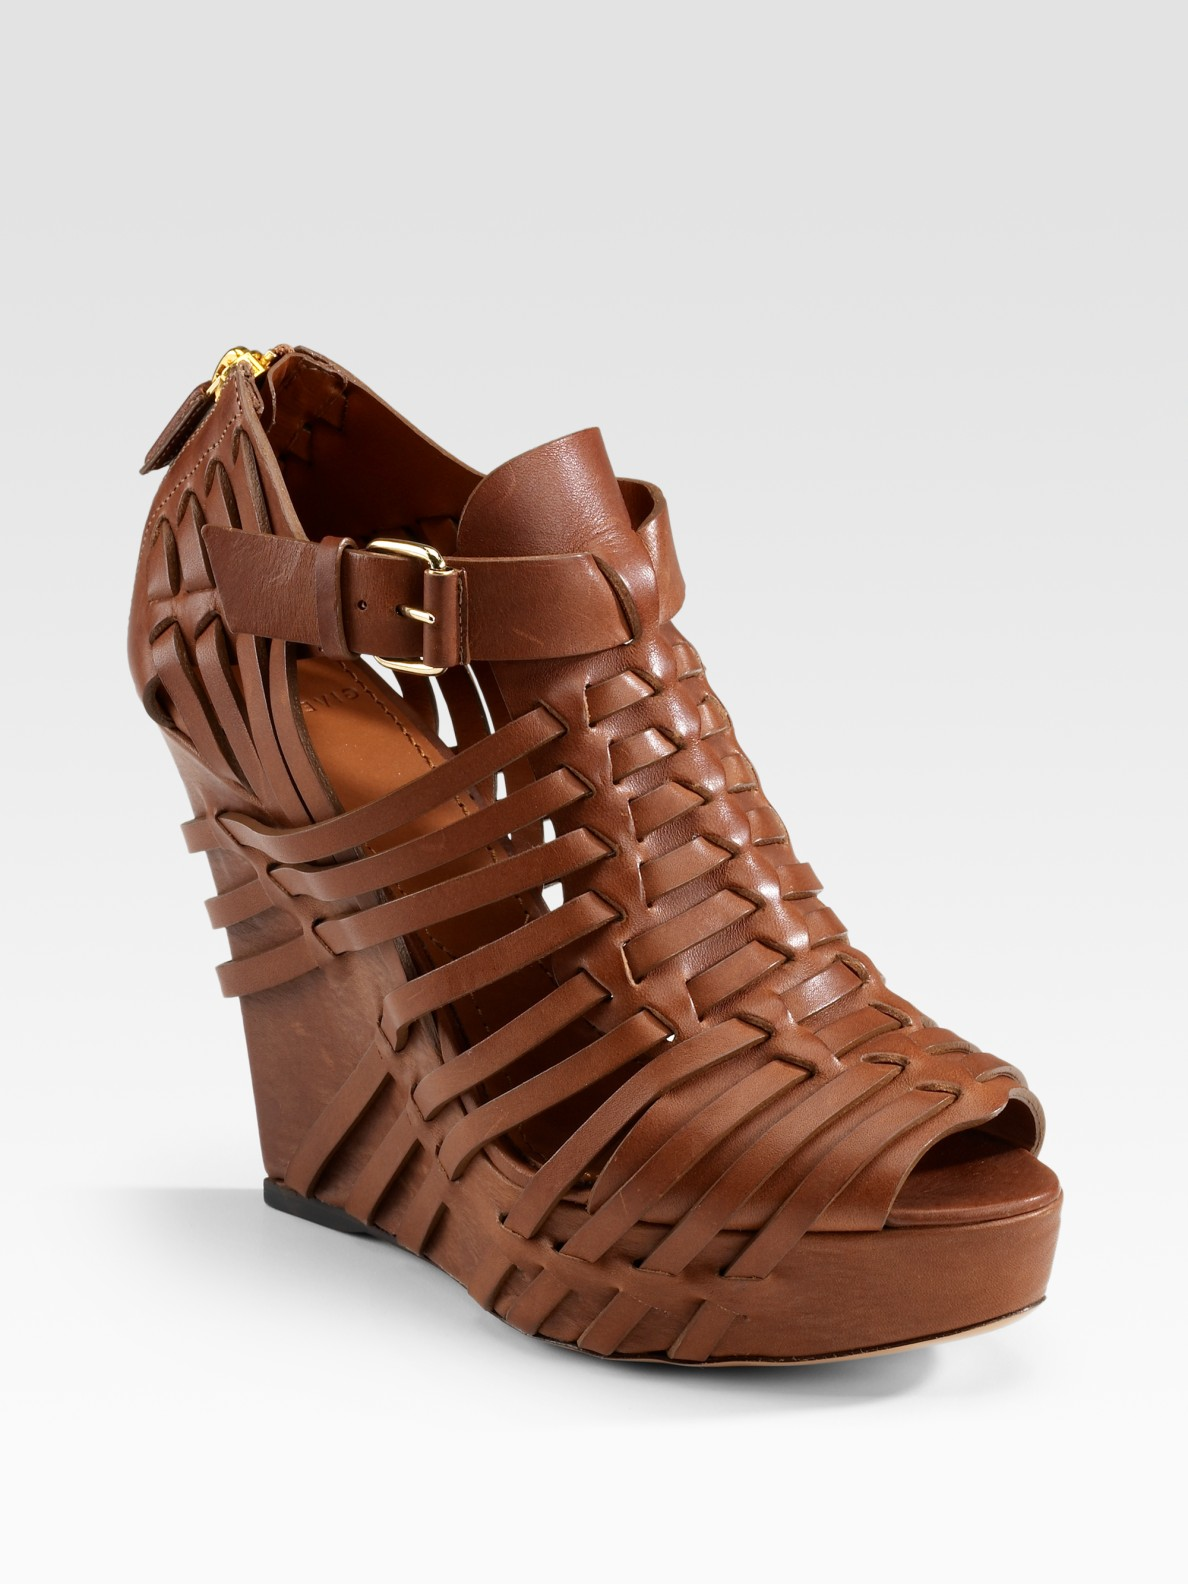 Givenchy Corinne Woven Leather Wedge Sandals In Brown Tan